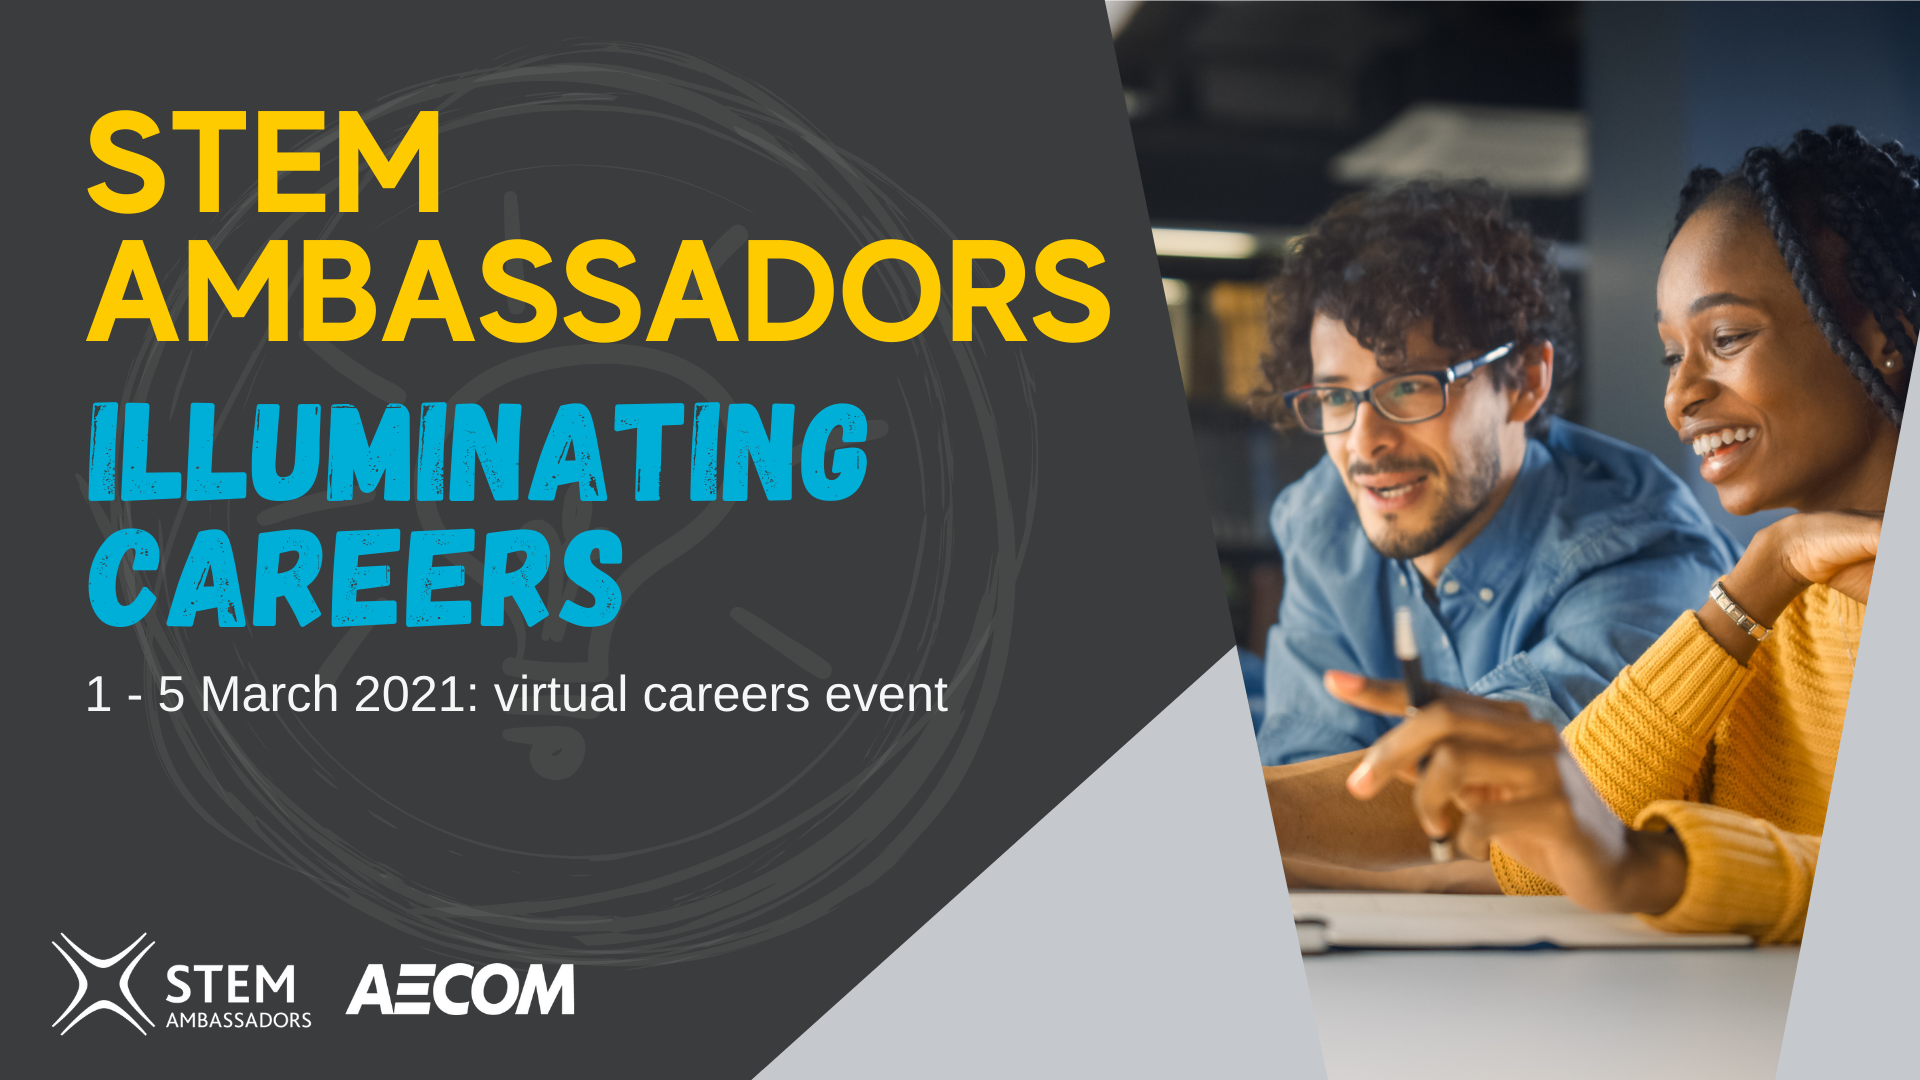 STEM Ambassadors: Illuminating Careers - virtual careers event